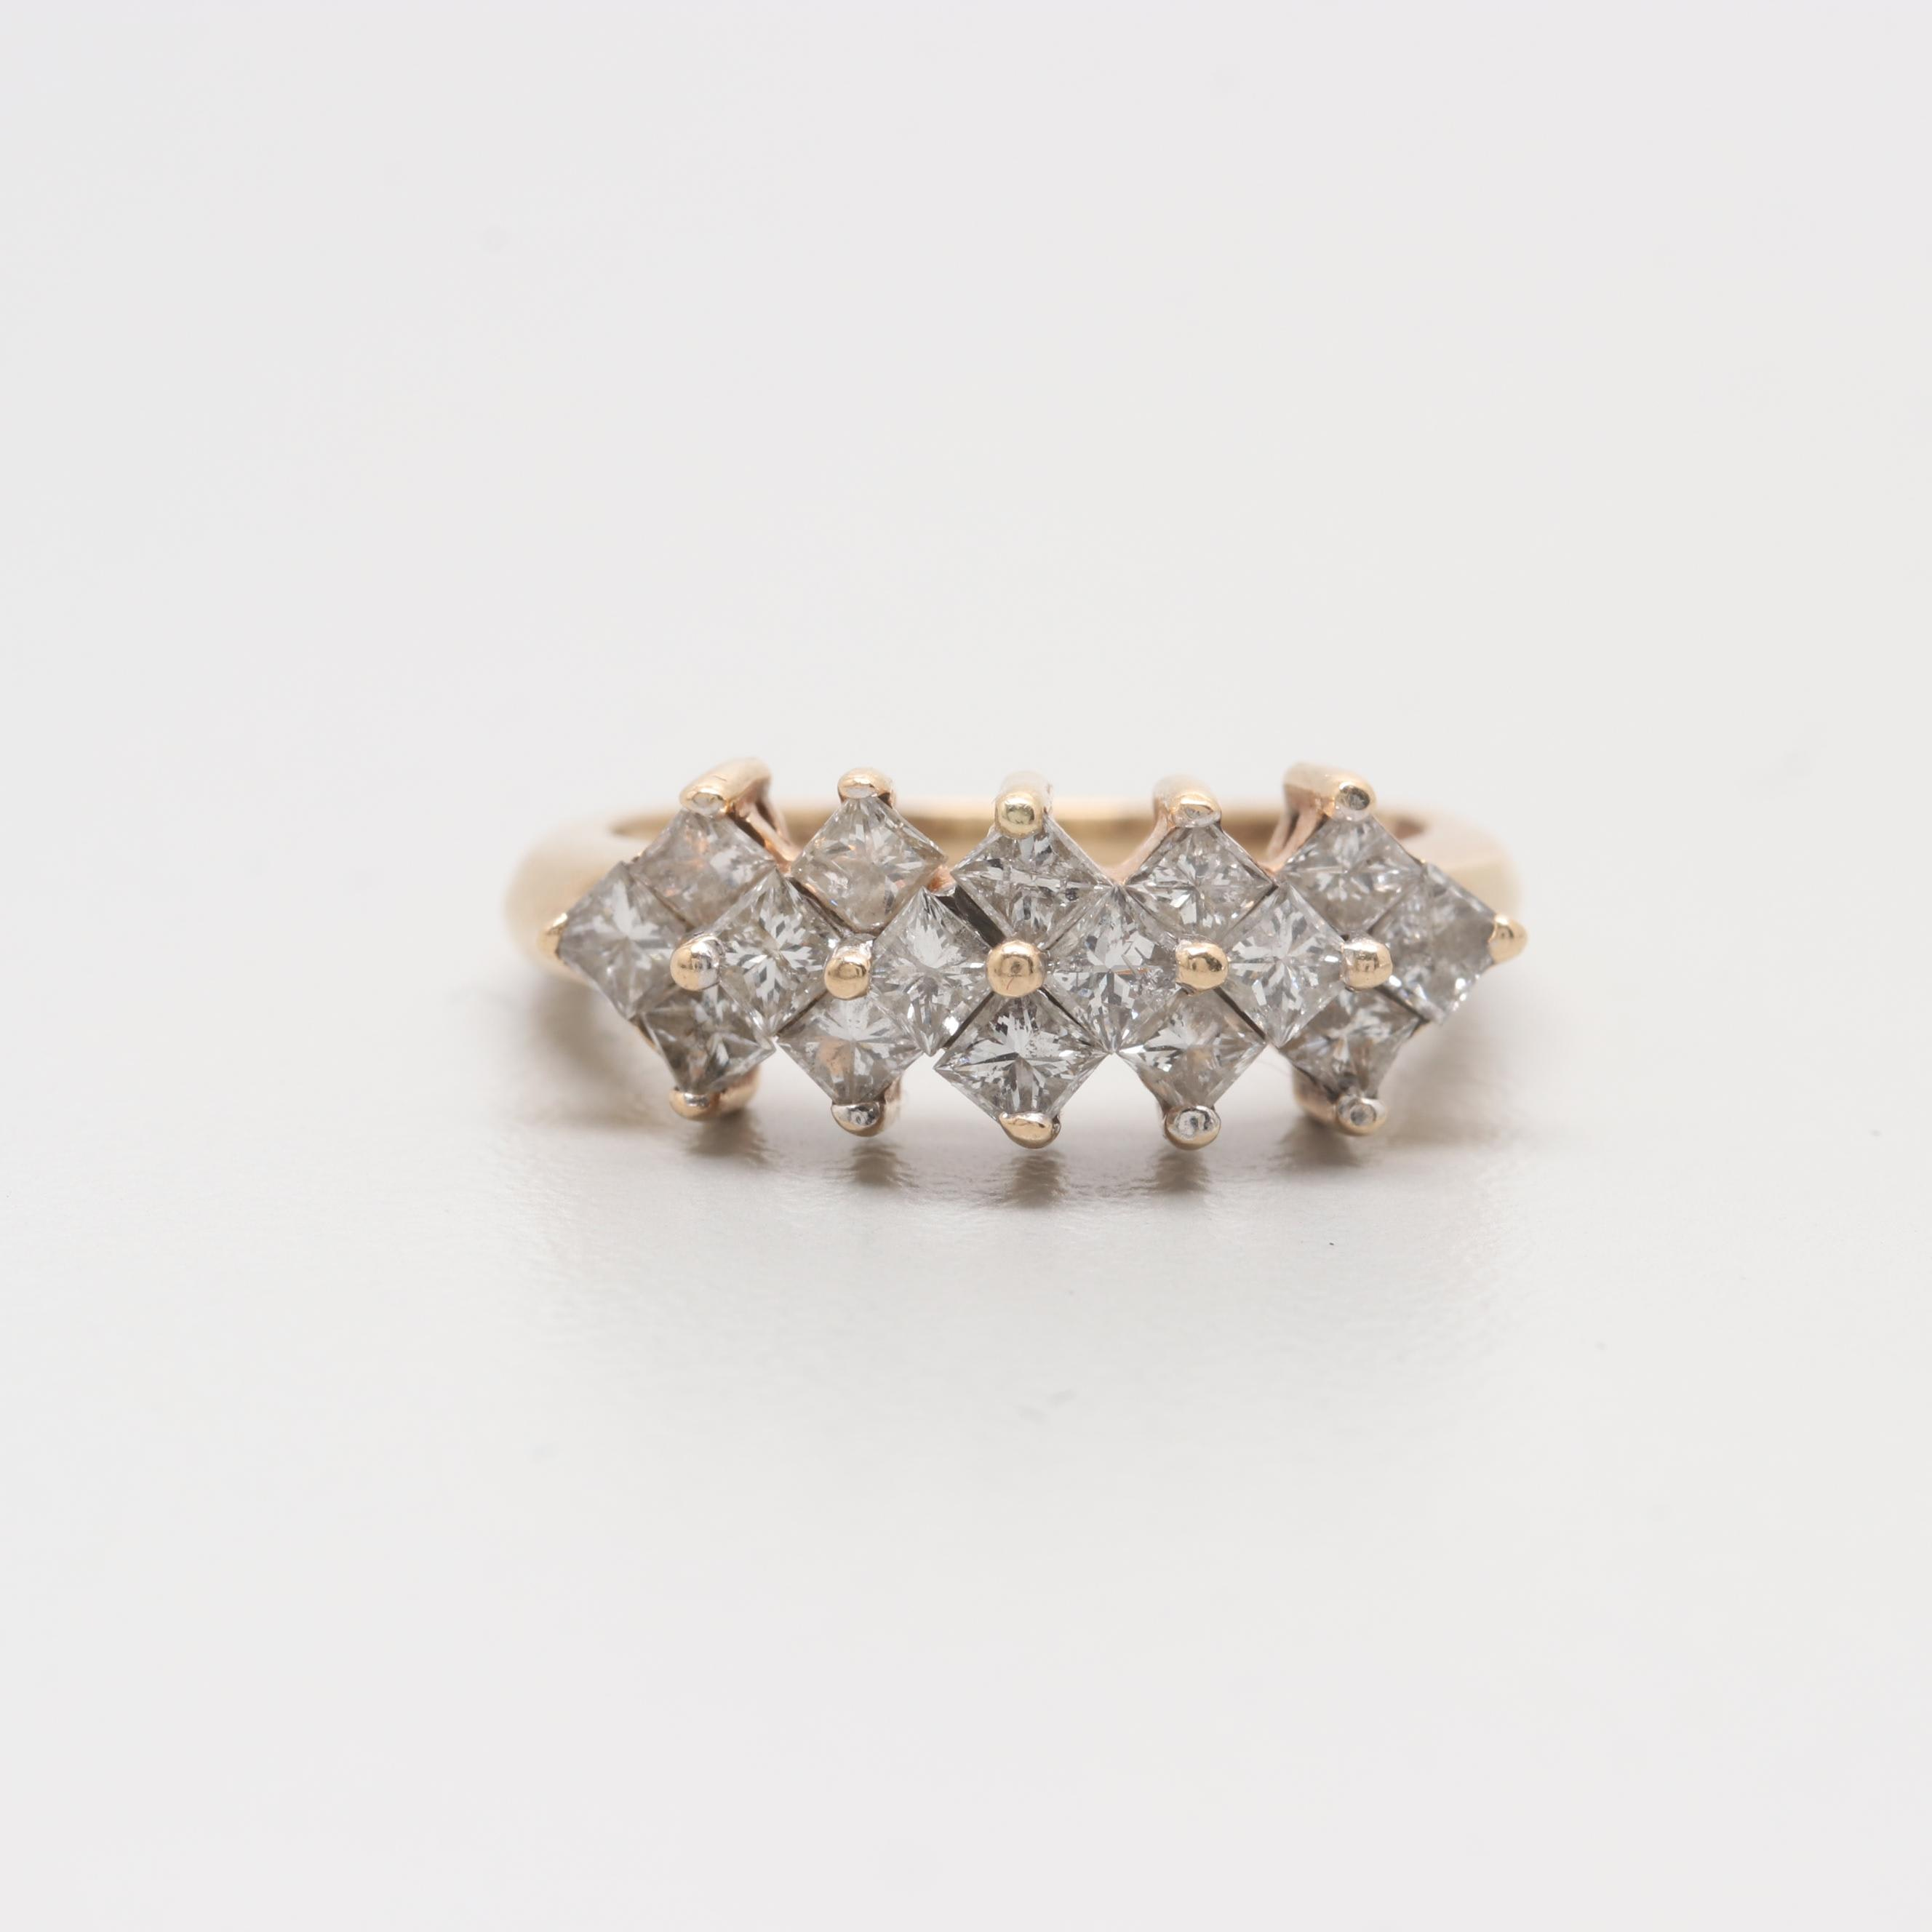 14K Yellow Gold 1.01 CTW Diamond Ring